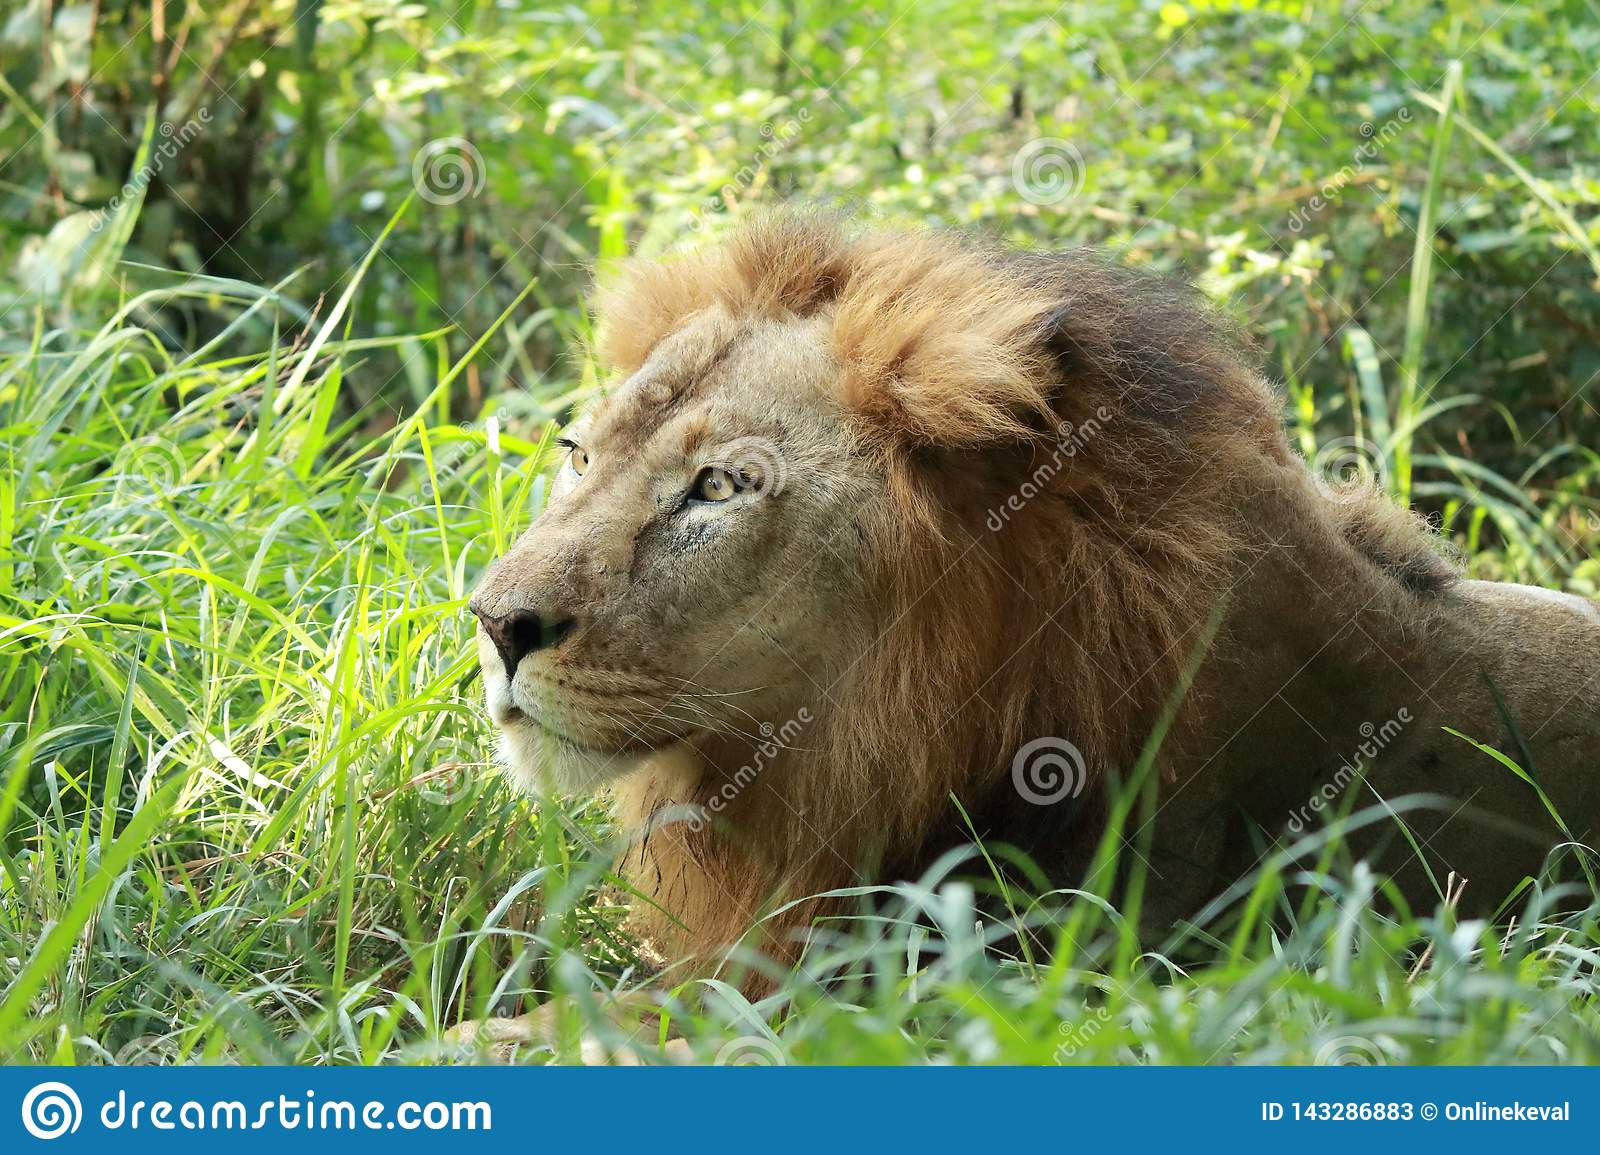 Lion sitting in the shrubs